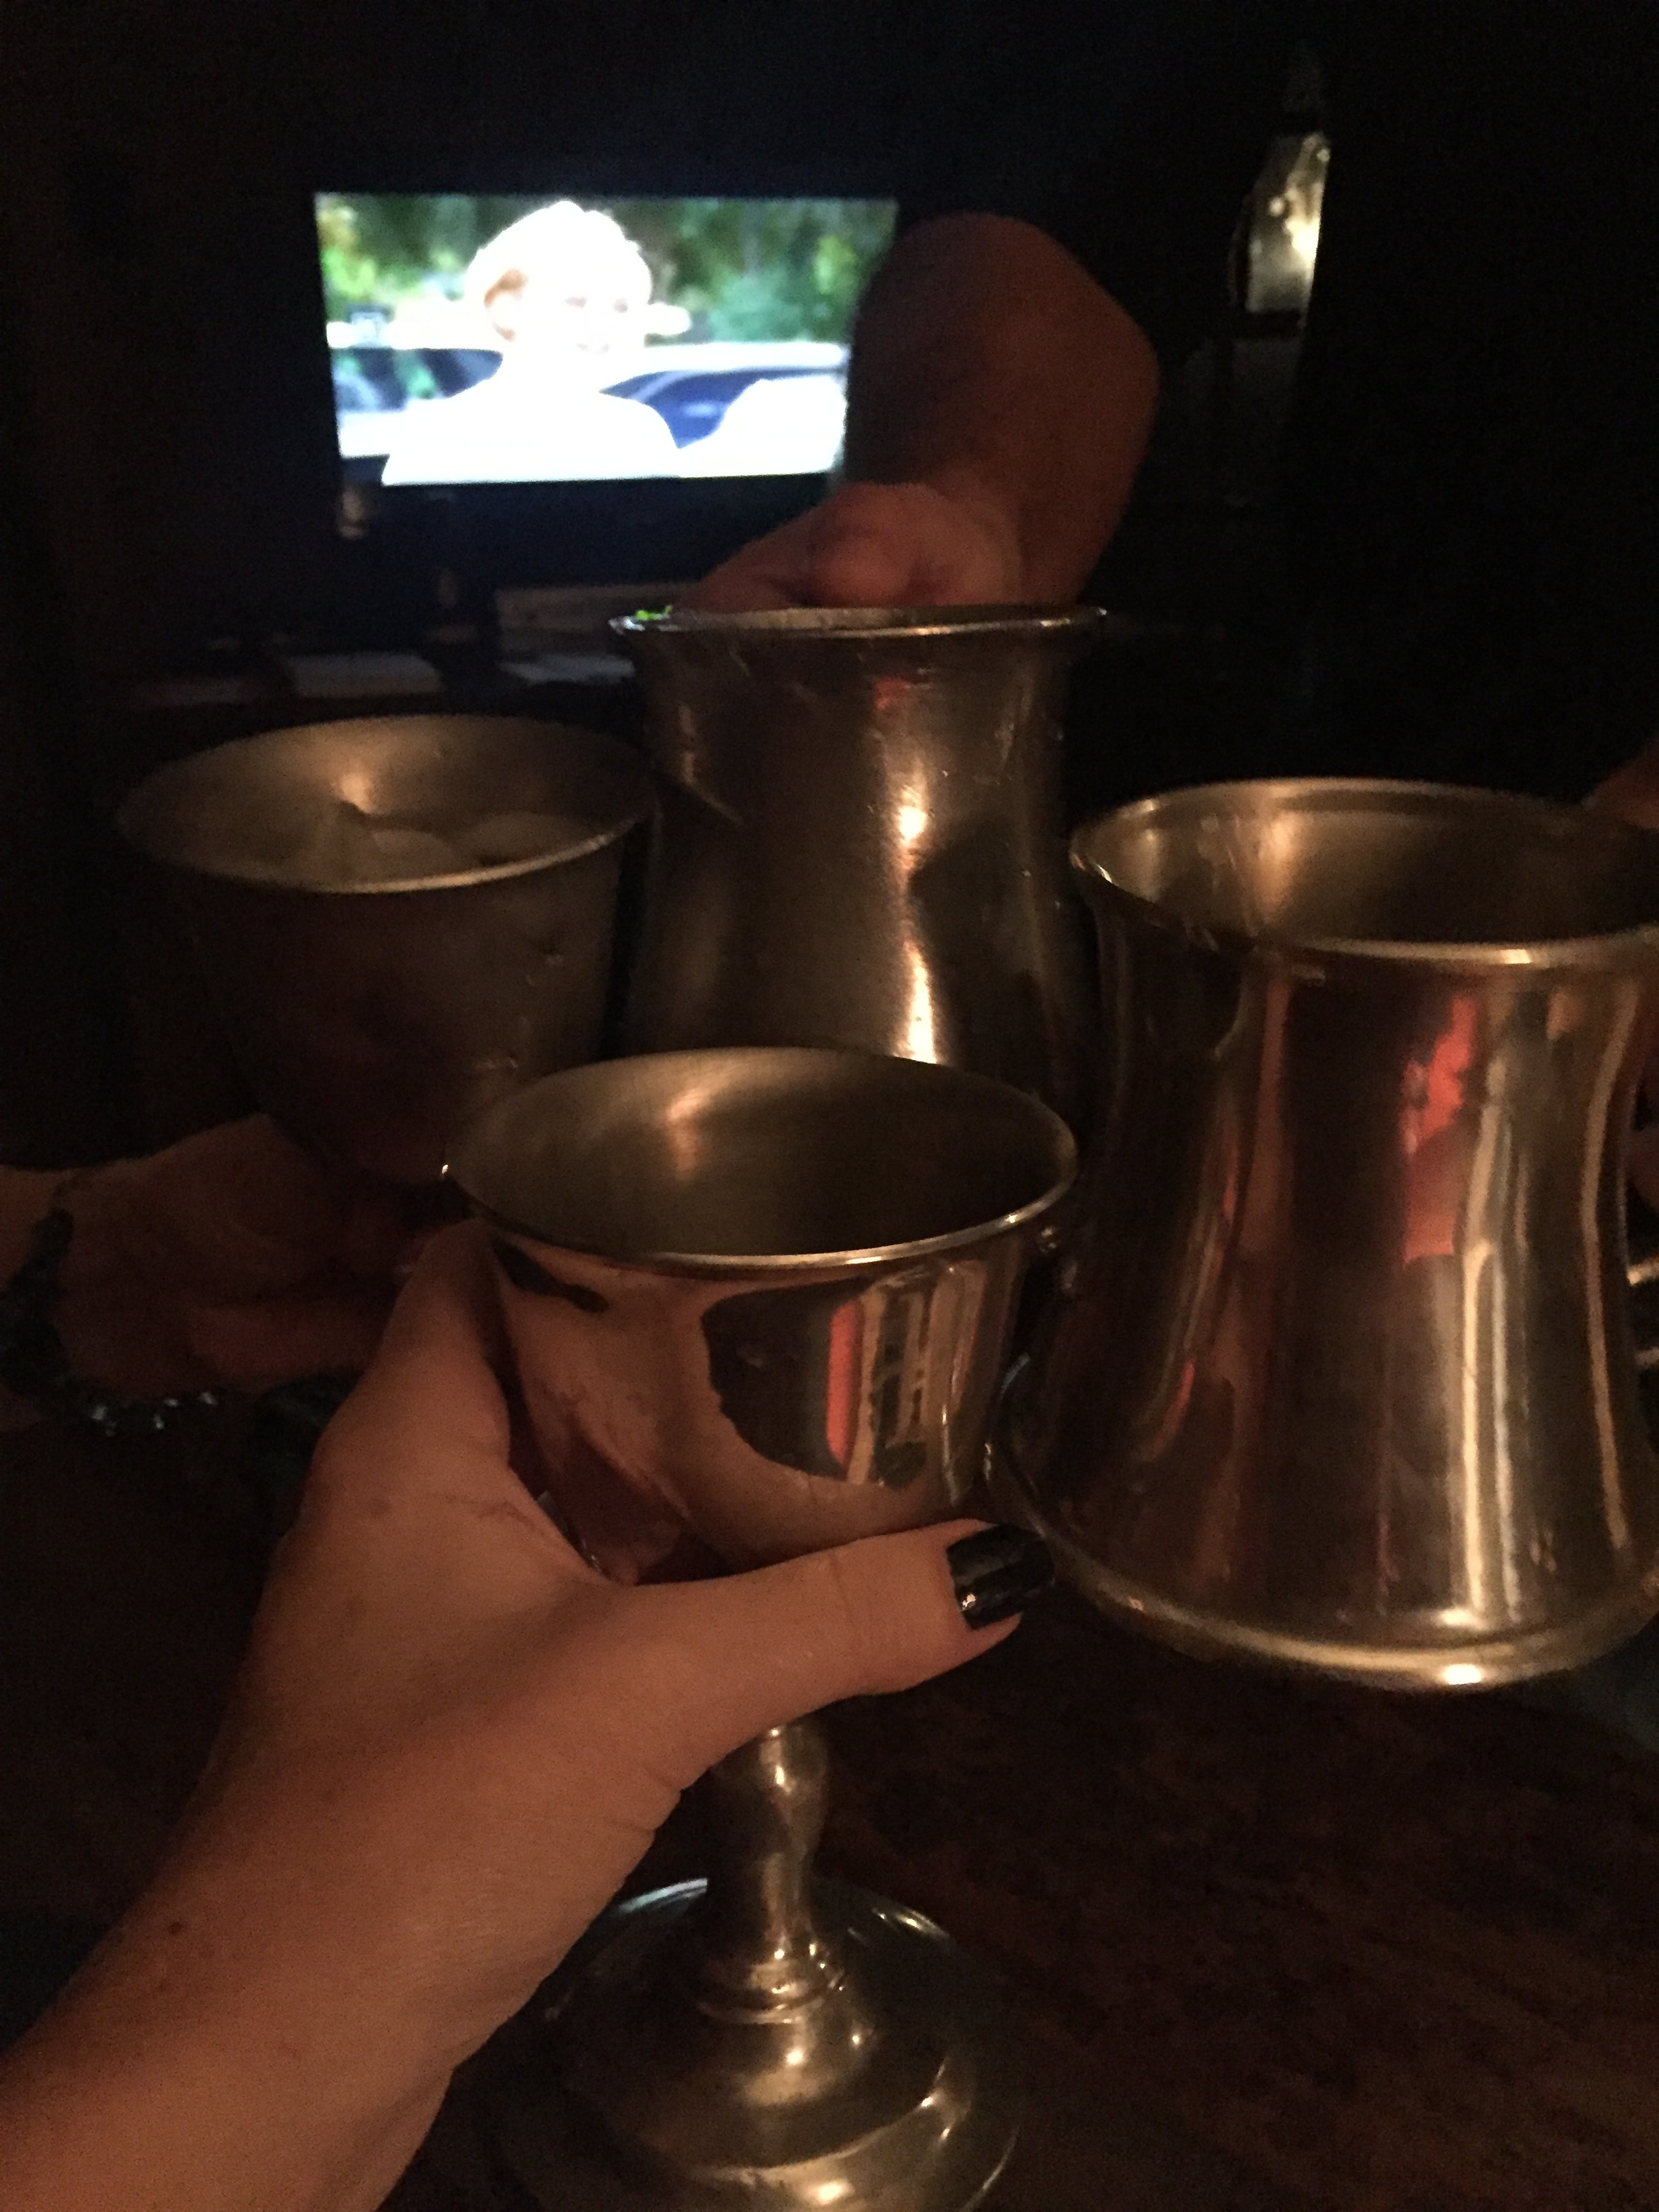 An impromptu call to friends who live close by, turned out to be a wonderful birthday celebration. We enjoyed a toast to our 35 plus year friendship (we have known each other from elementary school and high-school), birthdays, and then sipped our libations out of pewter cups and tankards. How appropriate!